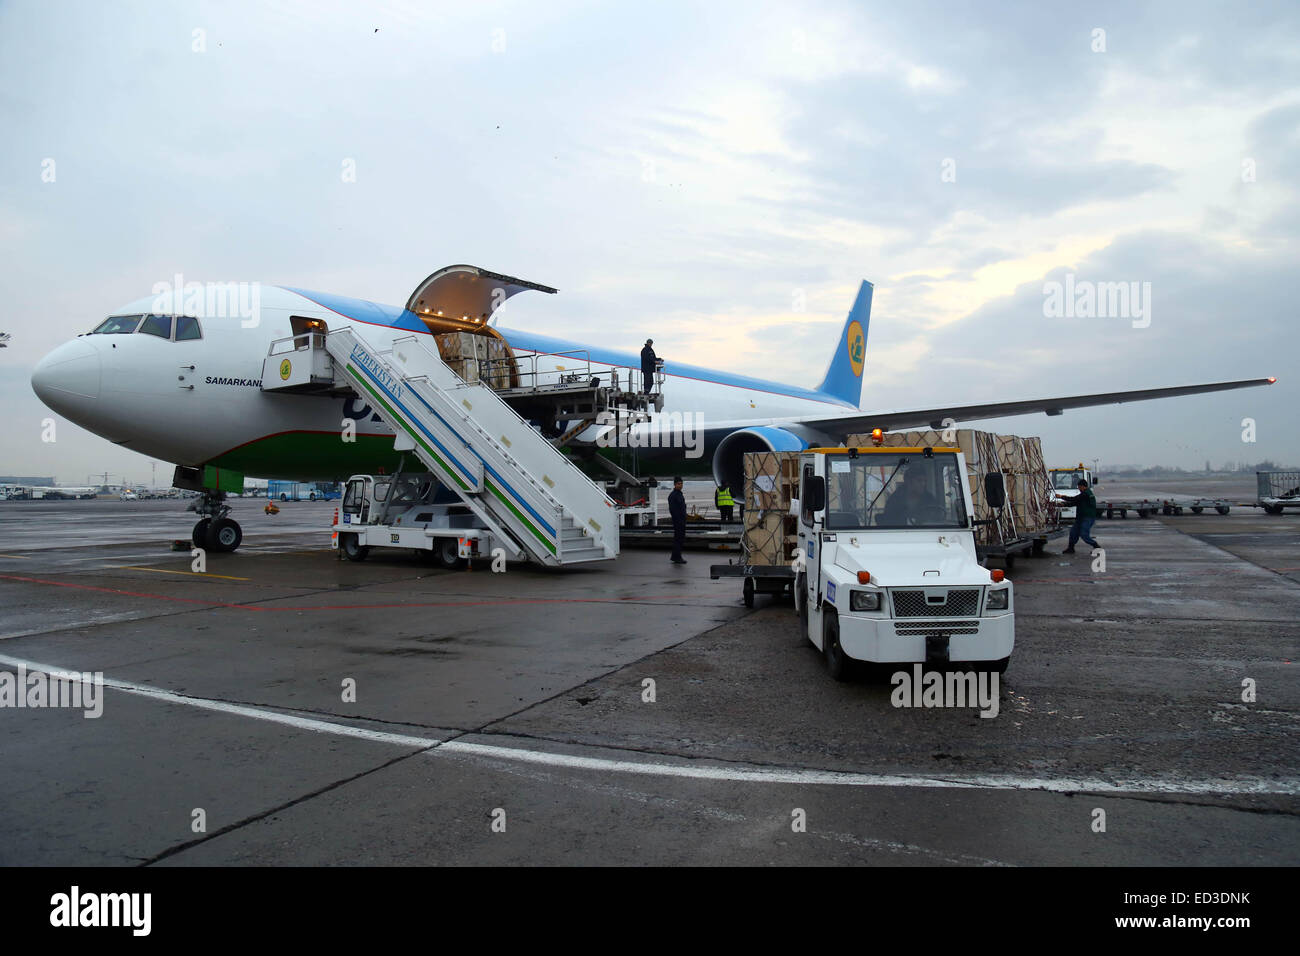 Tashkent. 25th Dec, 2014. A boeing 767 cargo charter of Uzbekistan Airways arrives at the airport of Tashkent, capital - Stock Image